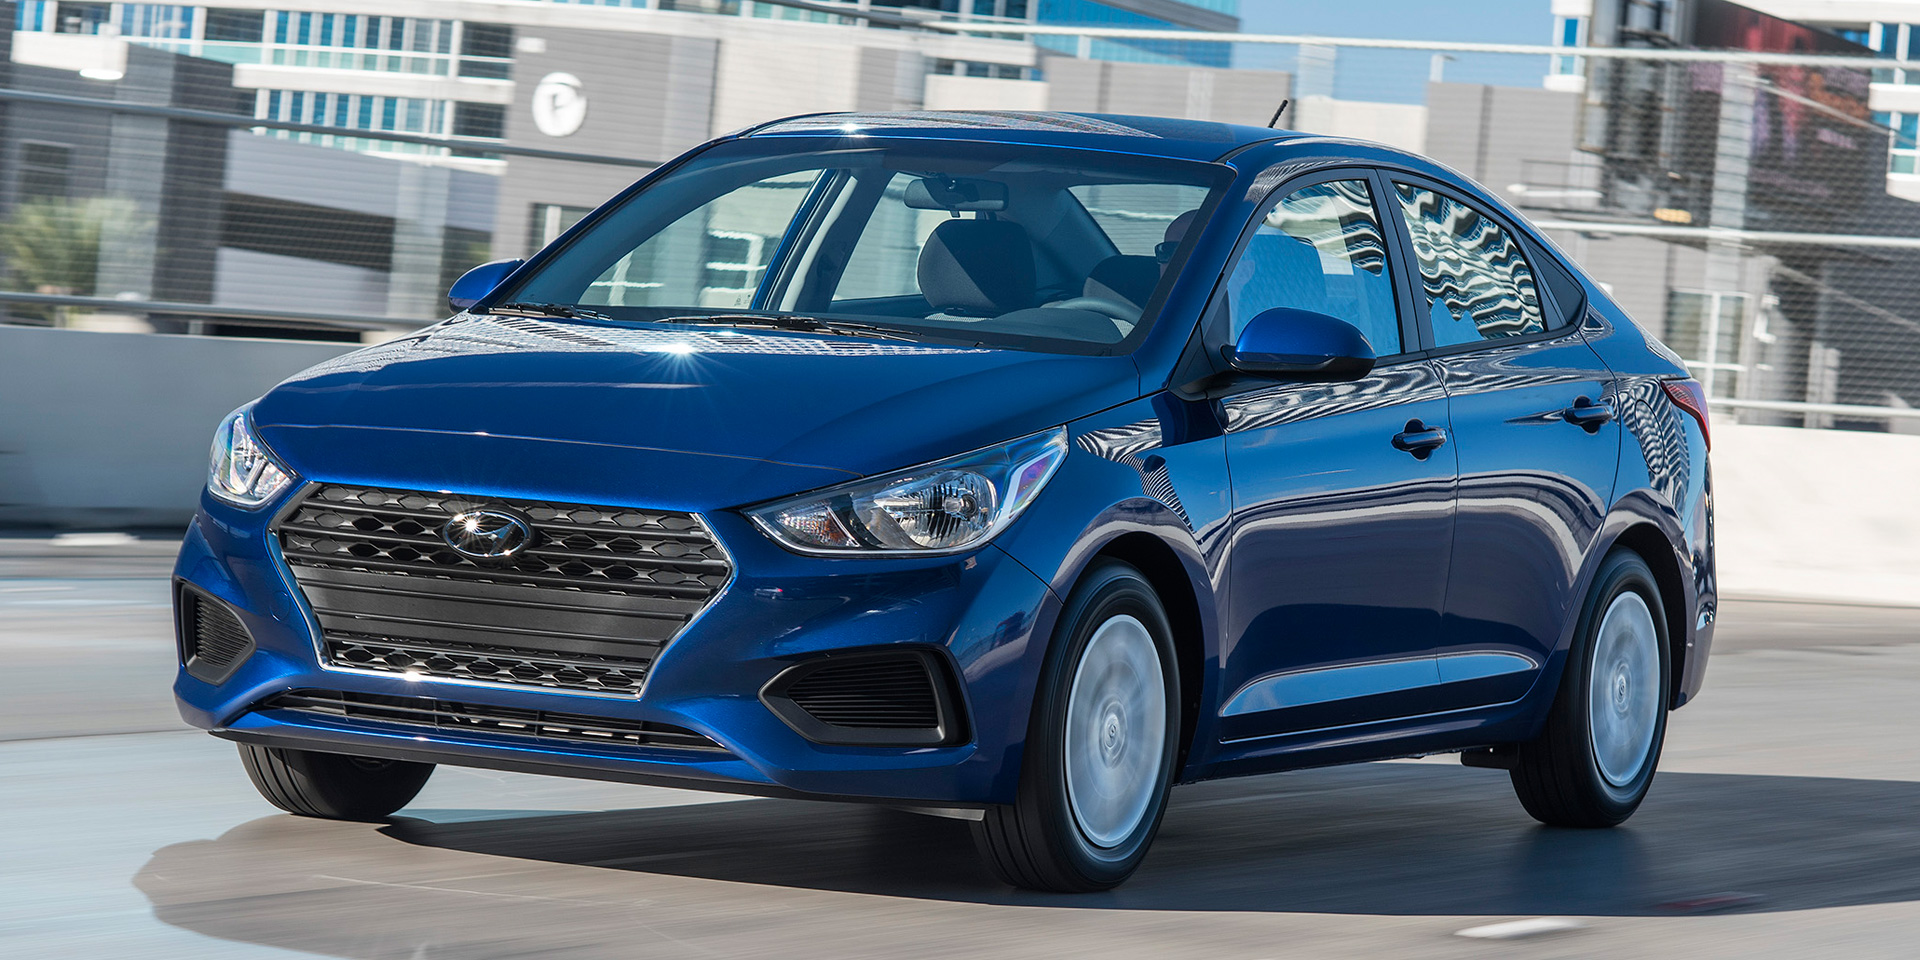 2019 Hyundai Accent Vehicles On Display Chicago Auto Show